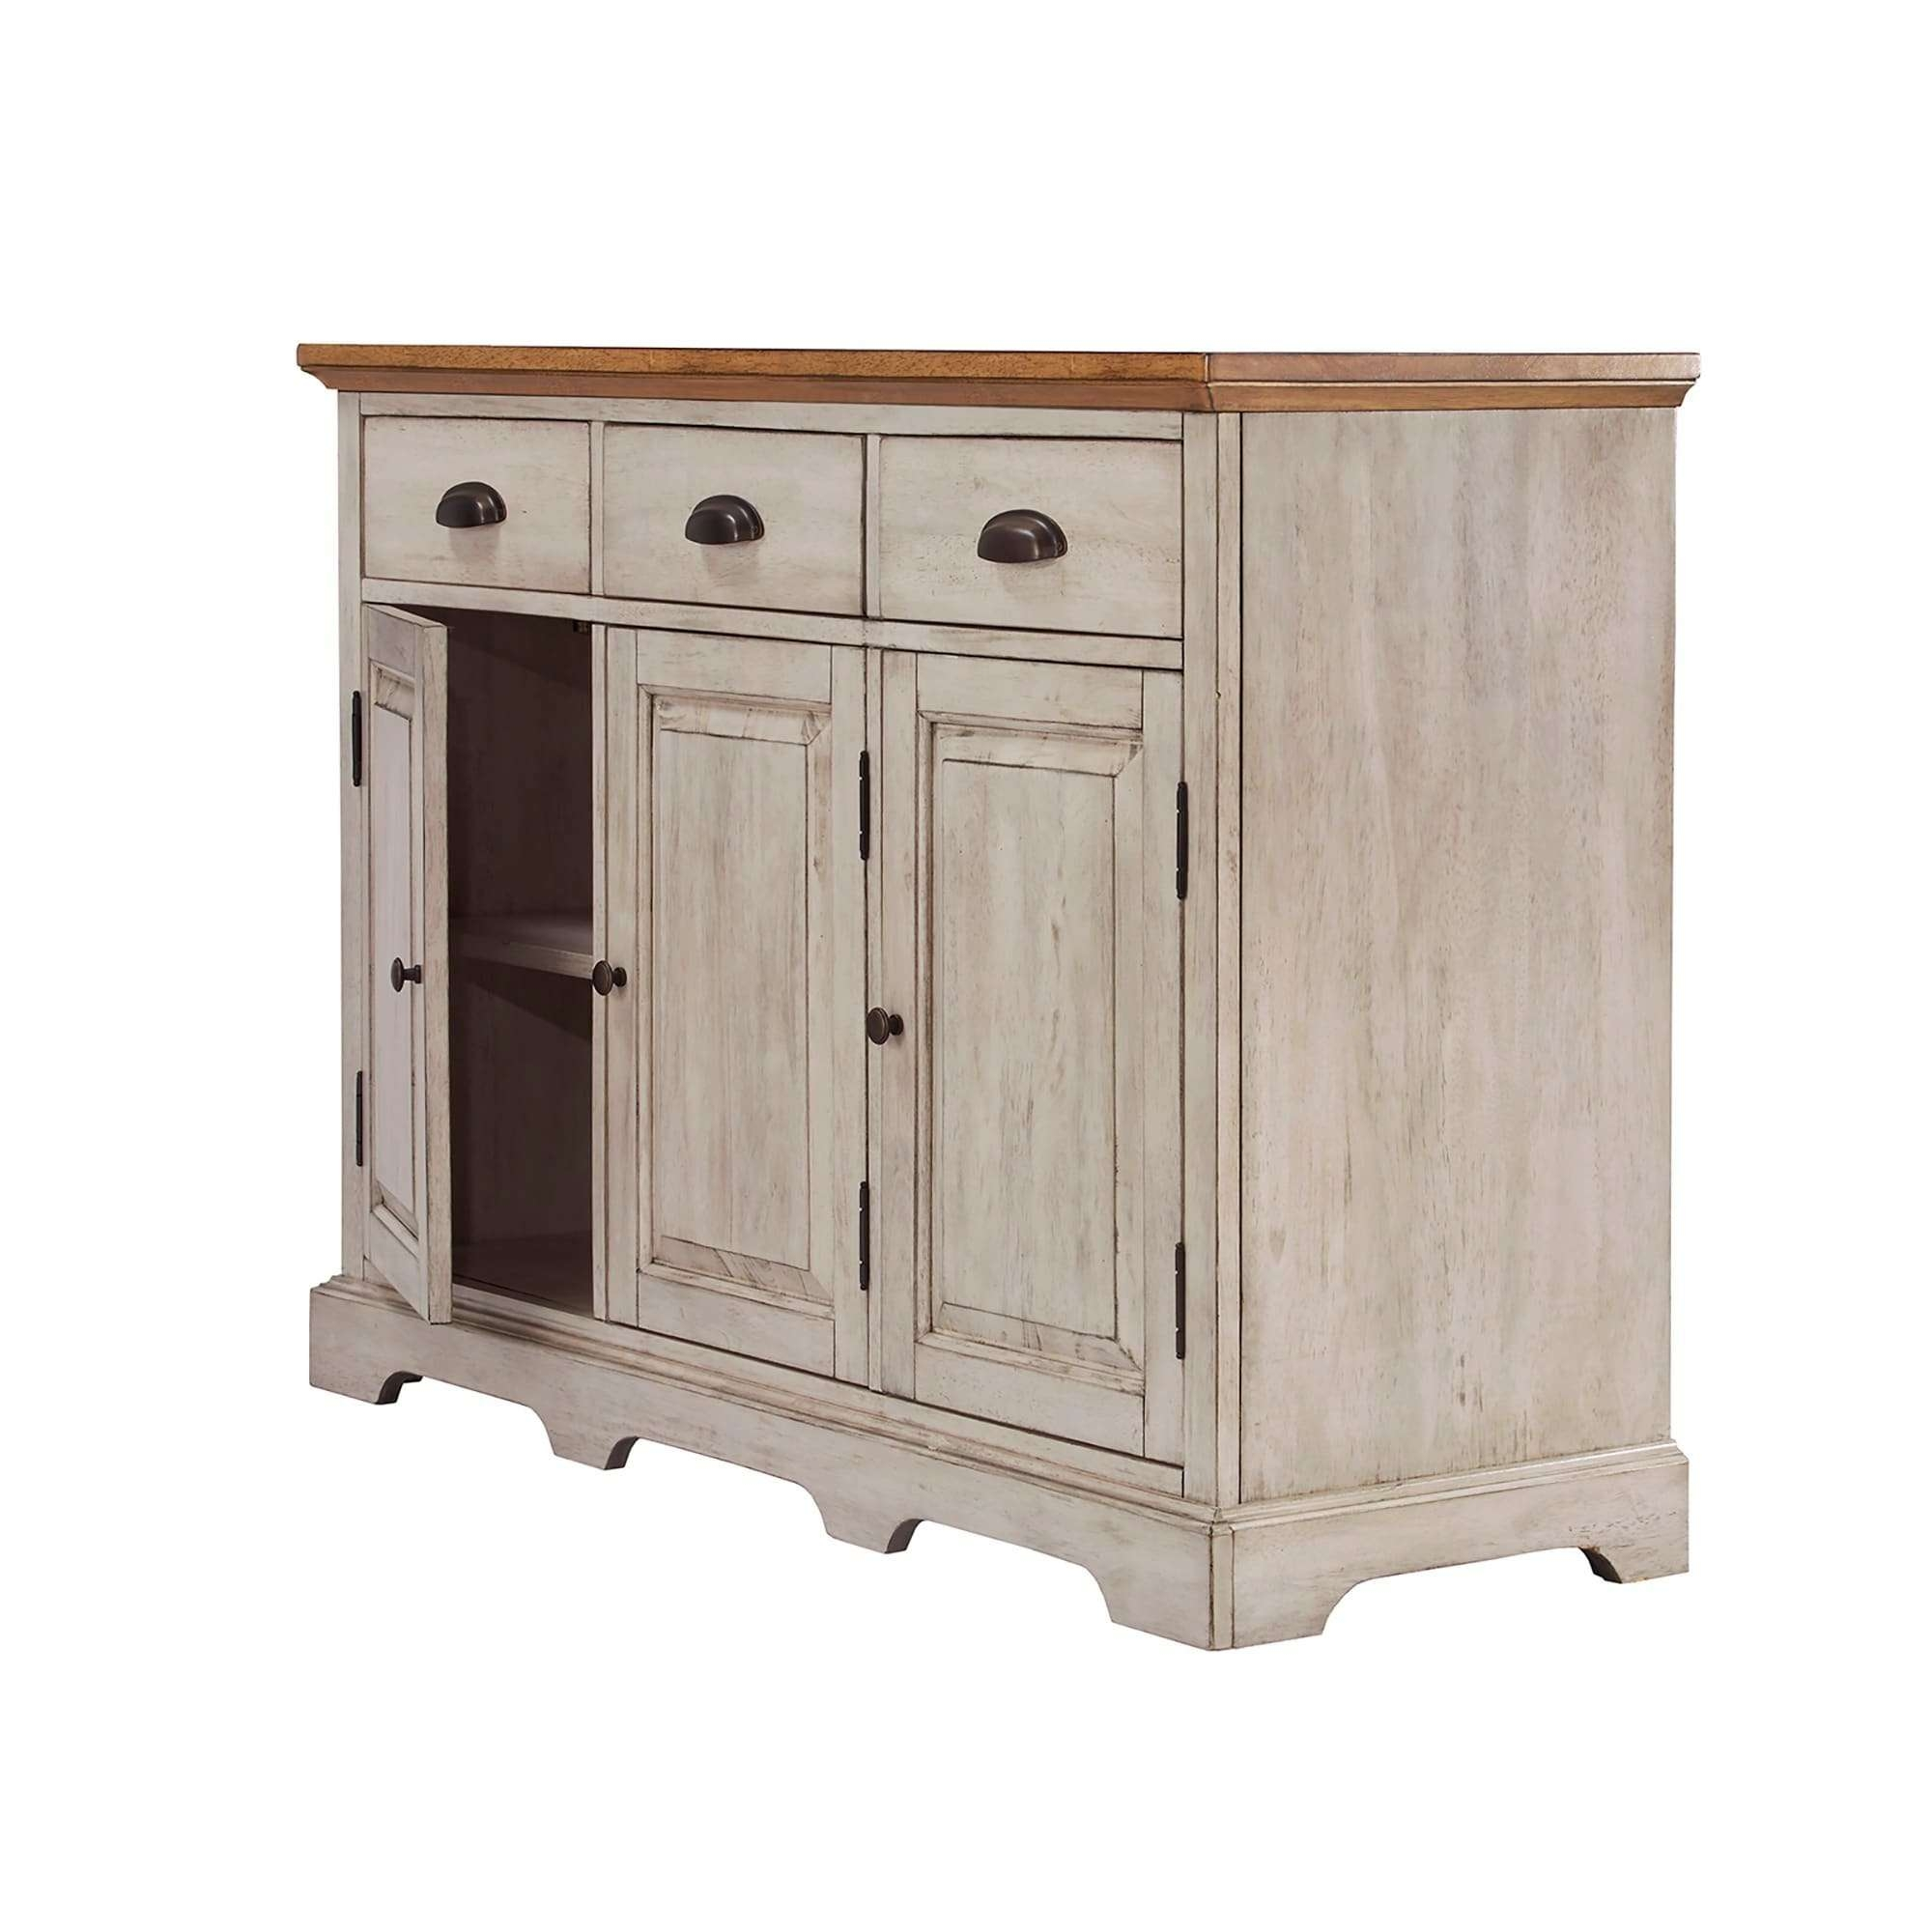 Eleanor Two Tone Wood Cabinet Buffet Serverinspire Q Classic In 50 Inch Sideboards (View 12 of 20)